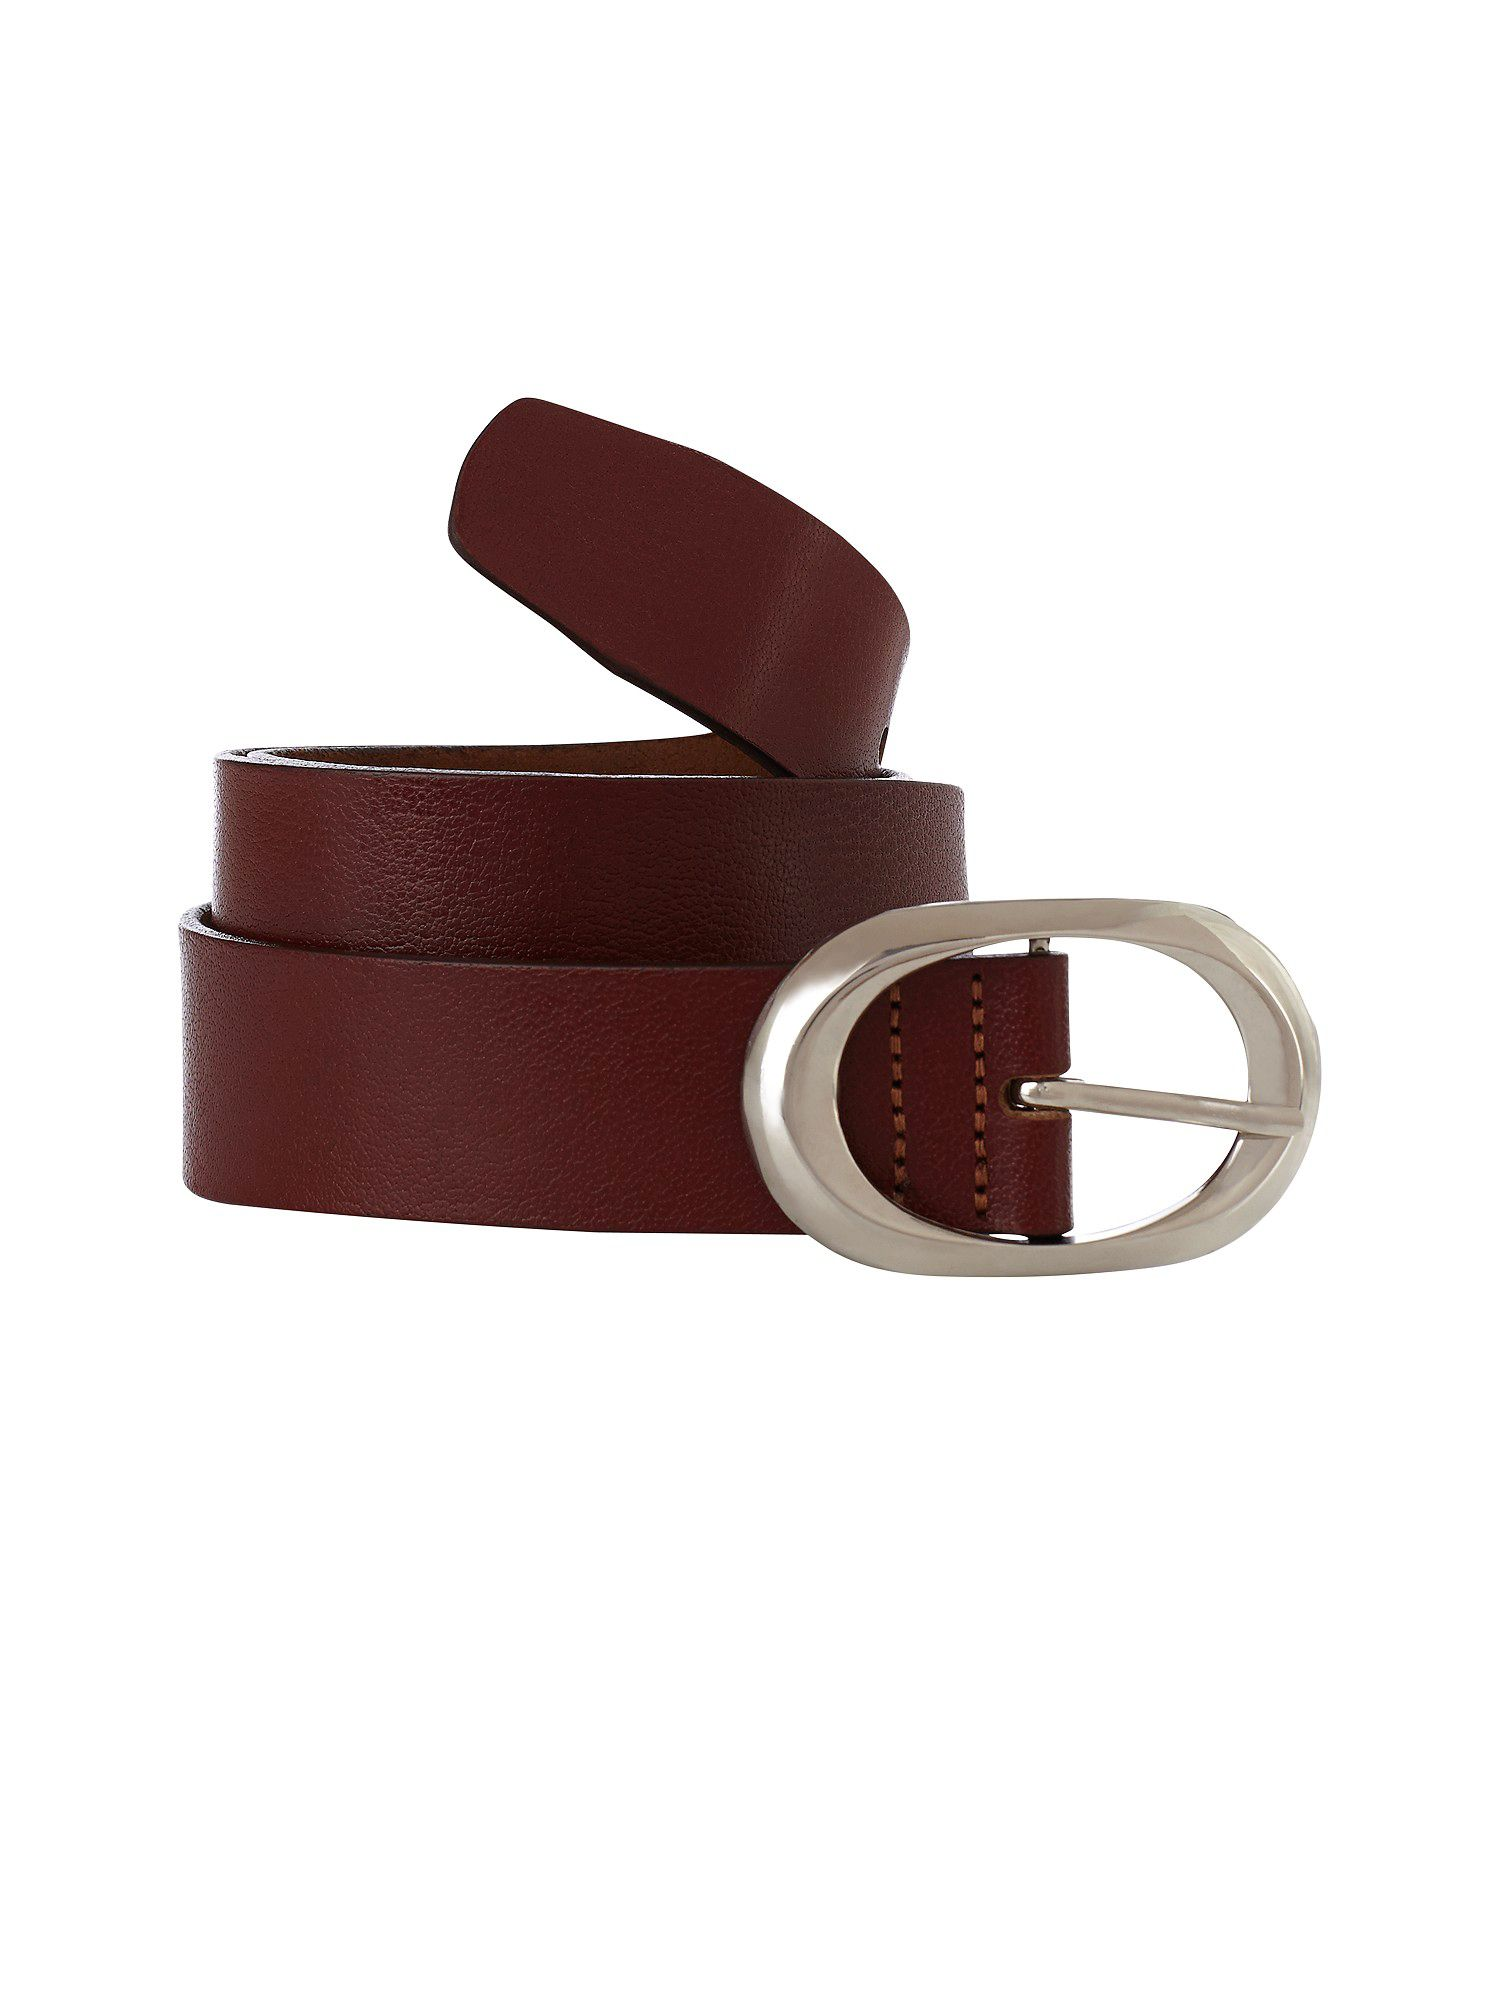 Dark tan leather jeans belt